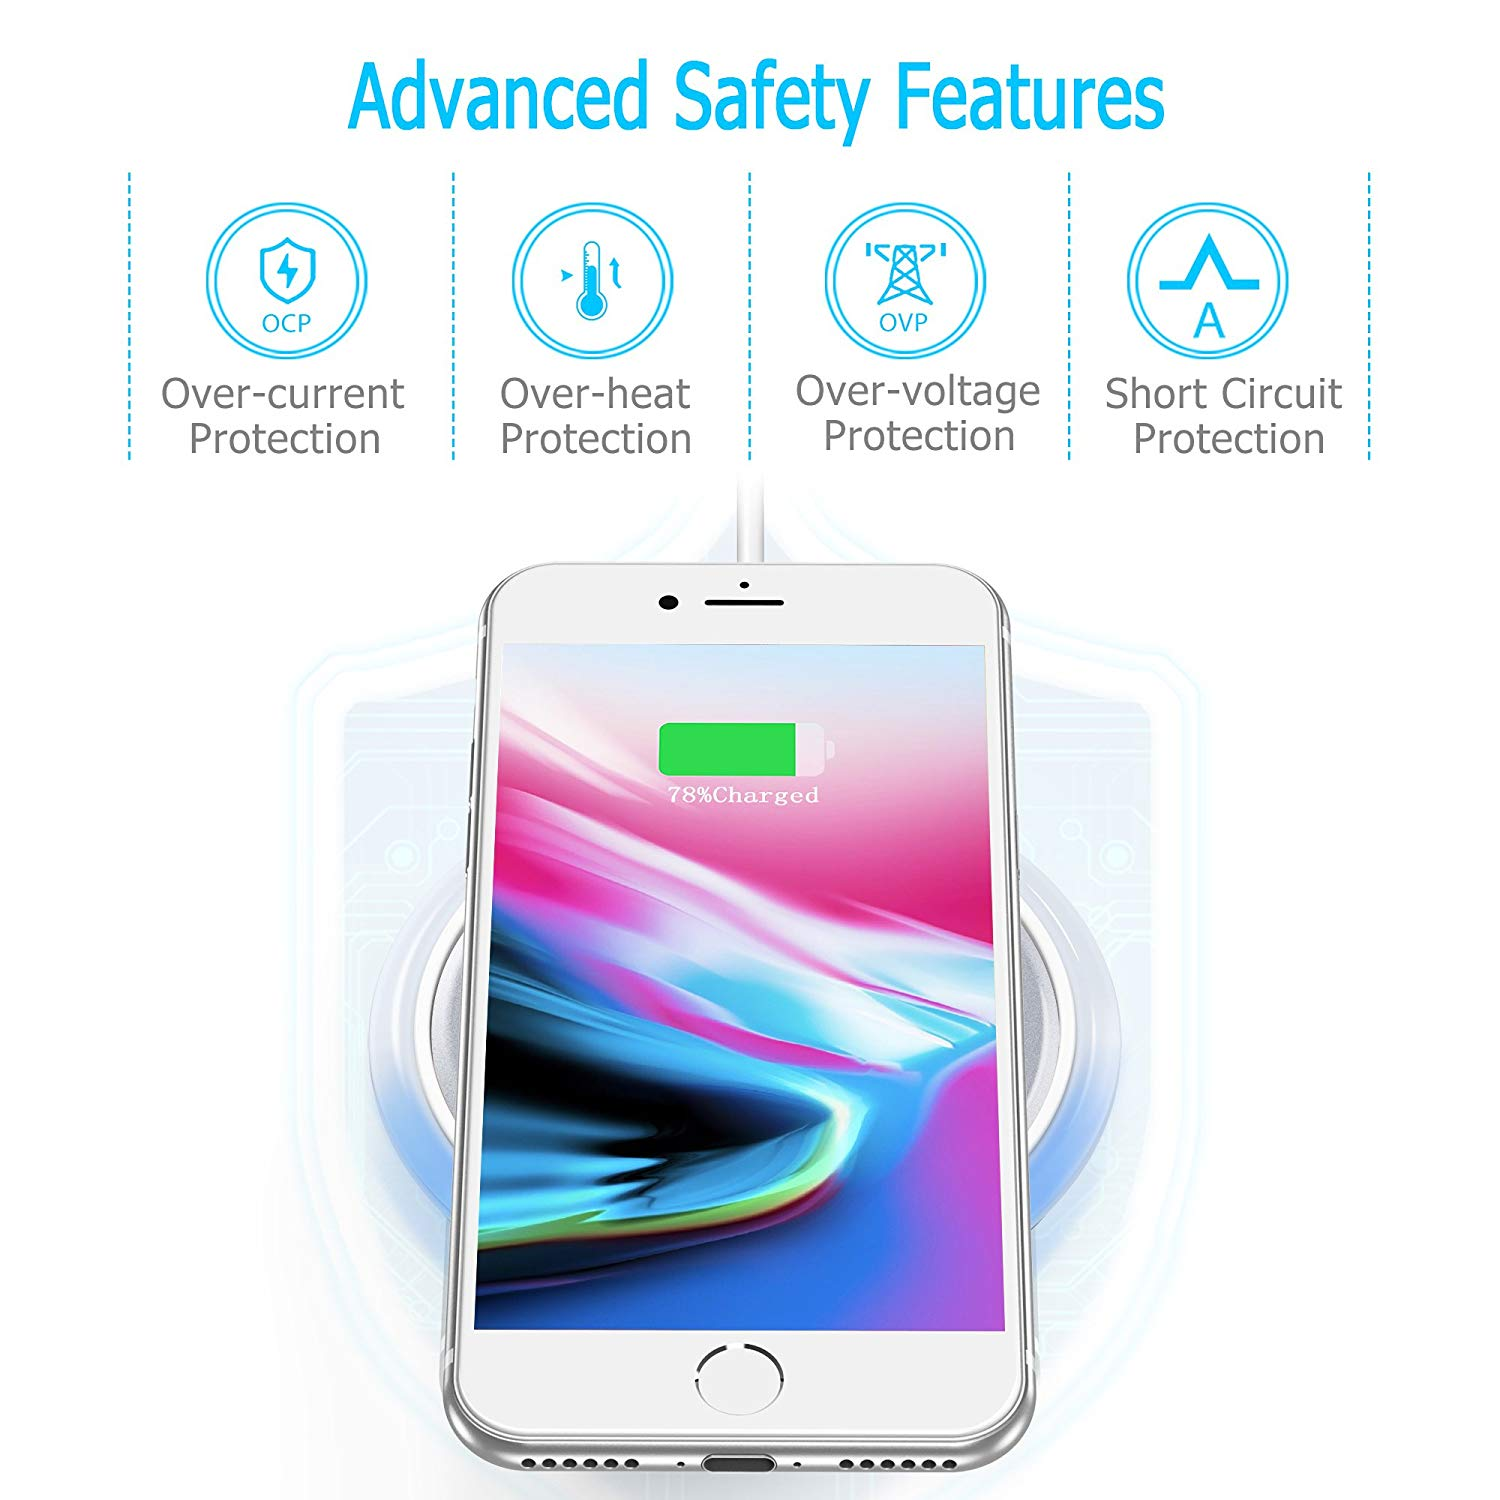 CHOETECH-Wireless-Cell-Phone-Charging-Pad-for-Qi-Enabled-Devices thumbnail 14